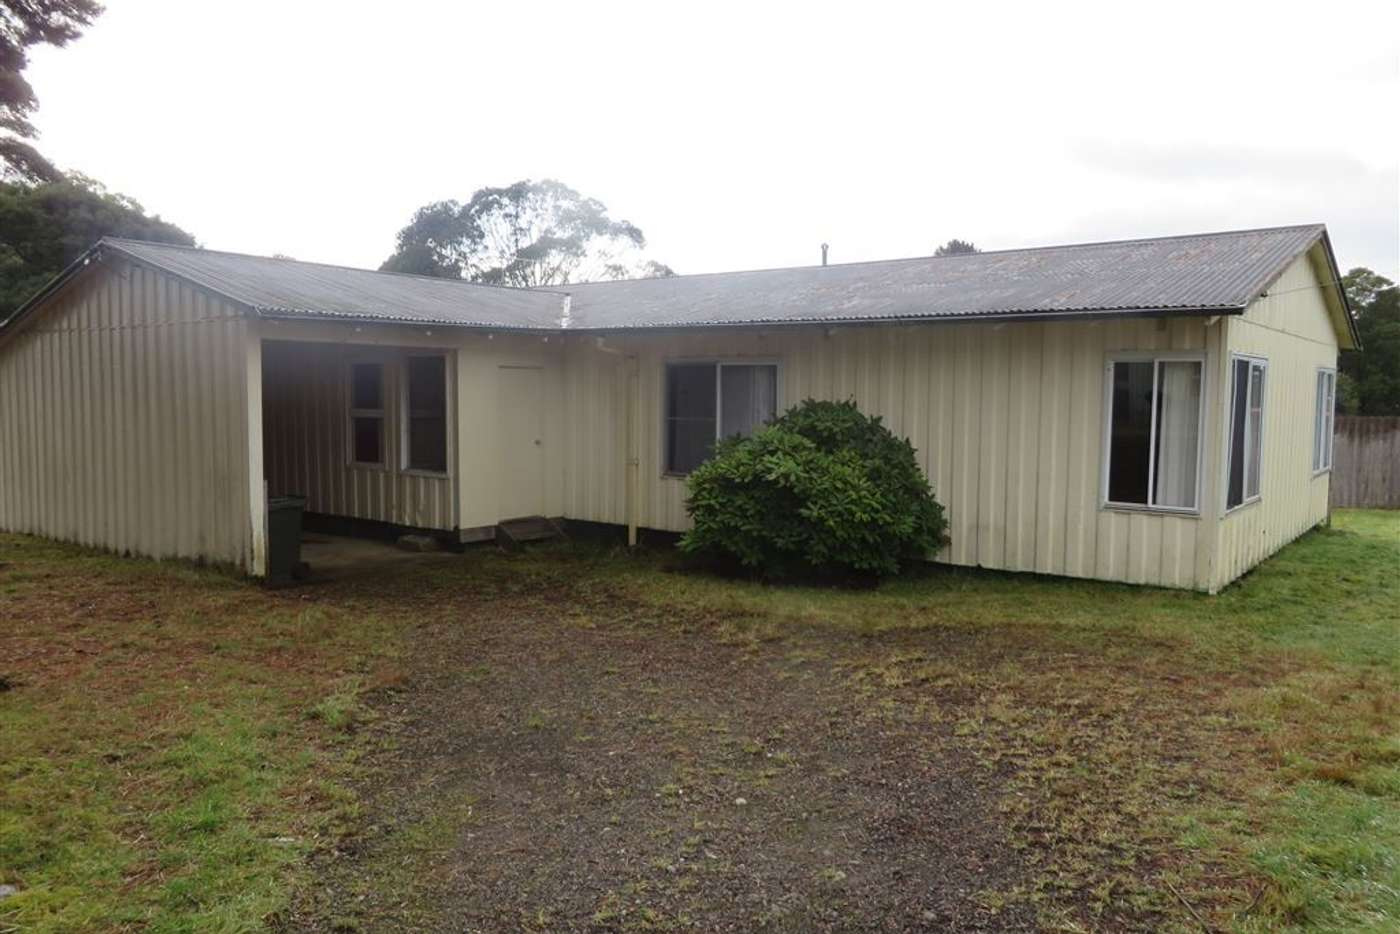 Main view of Homely house listing, 8 Counsel St, Zeehan TAS 7469